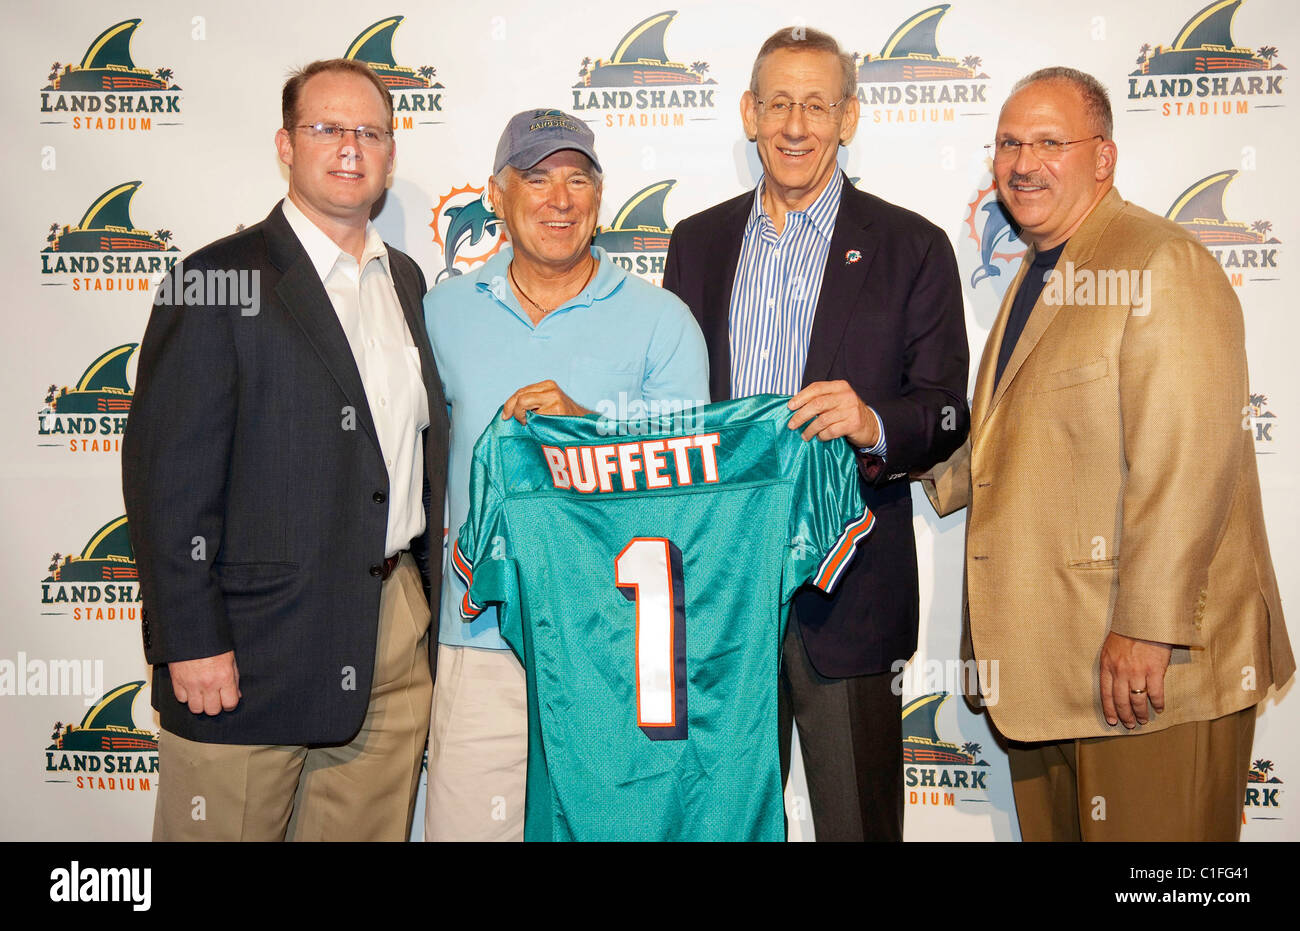 Miami Dolphins General Manager Stock Photos & Miami Dolphins General ...